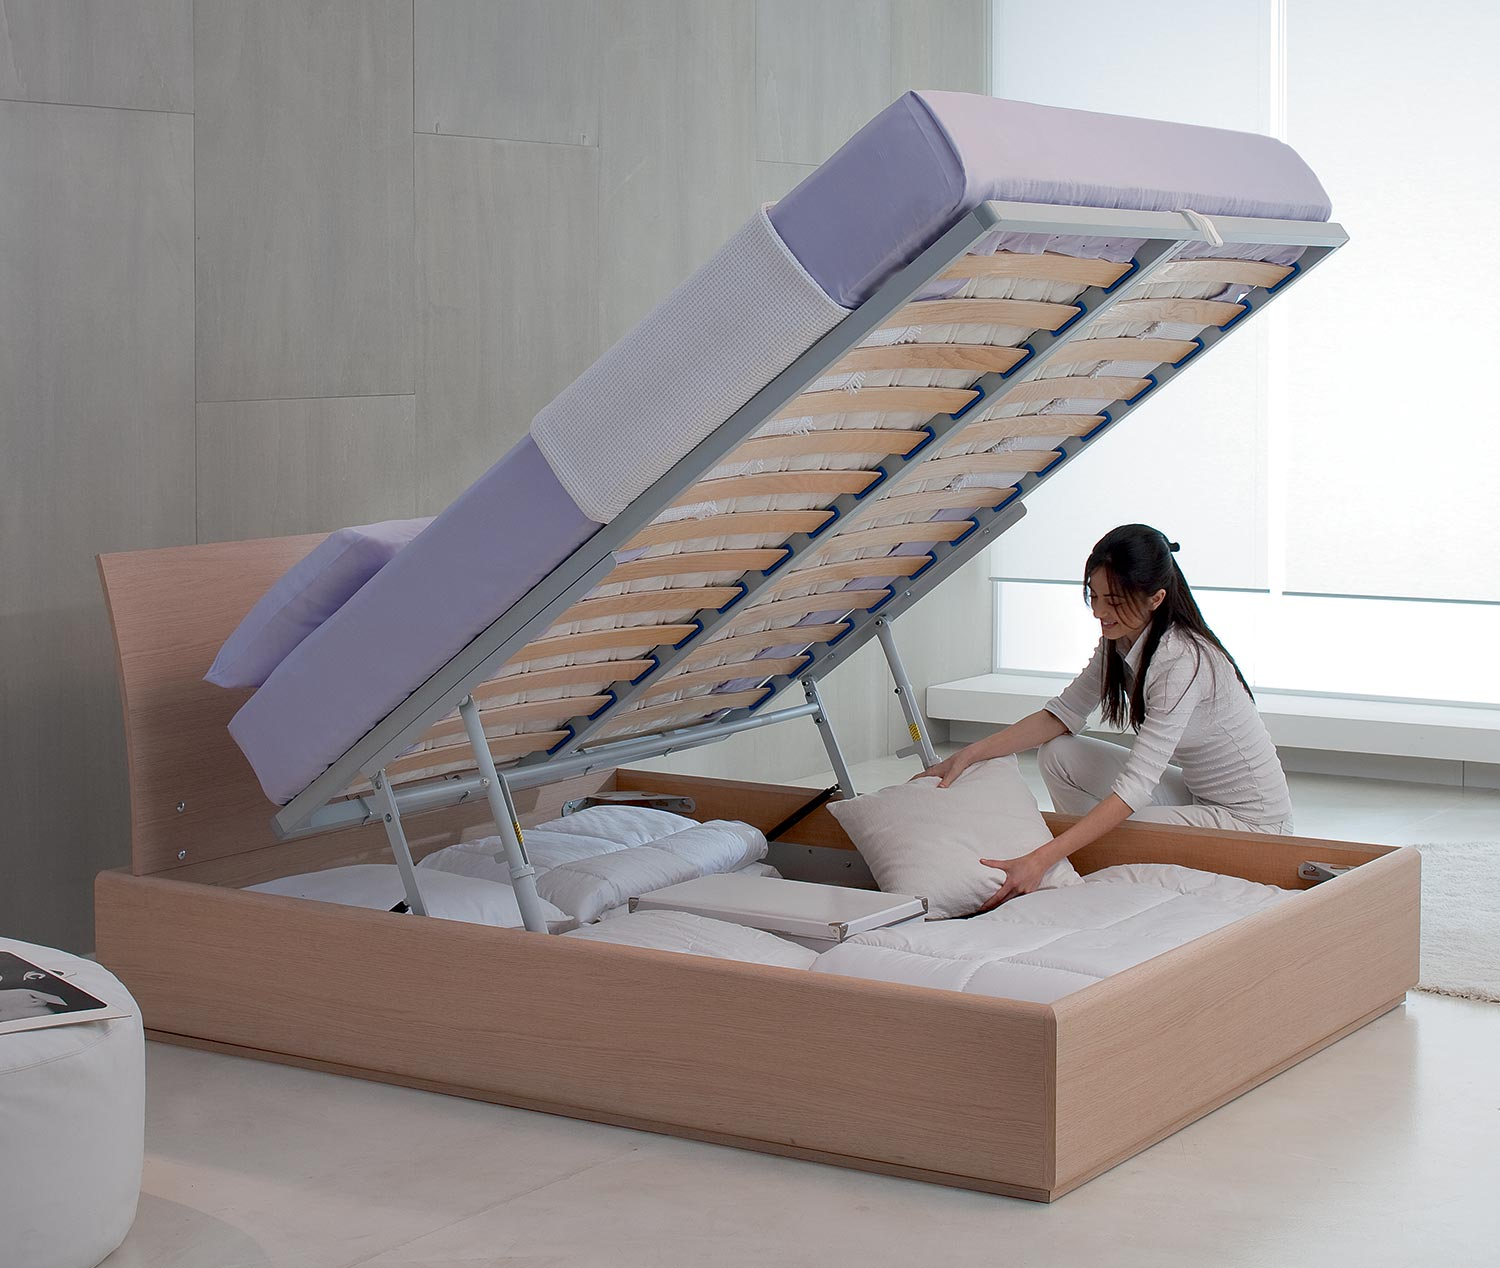 Lifting Beds Pessotto Reti Bed Lifting Mechanisms International Prodimex